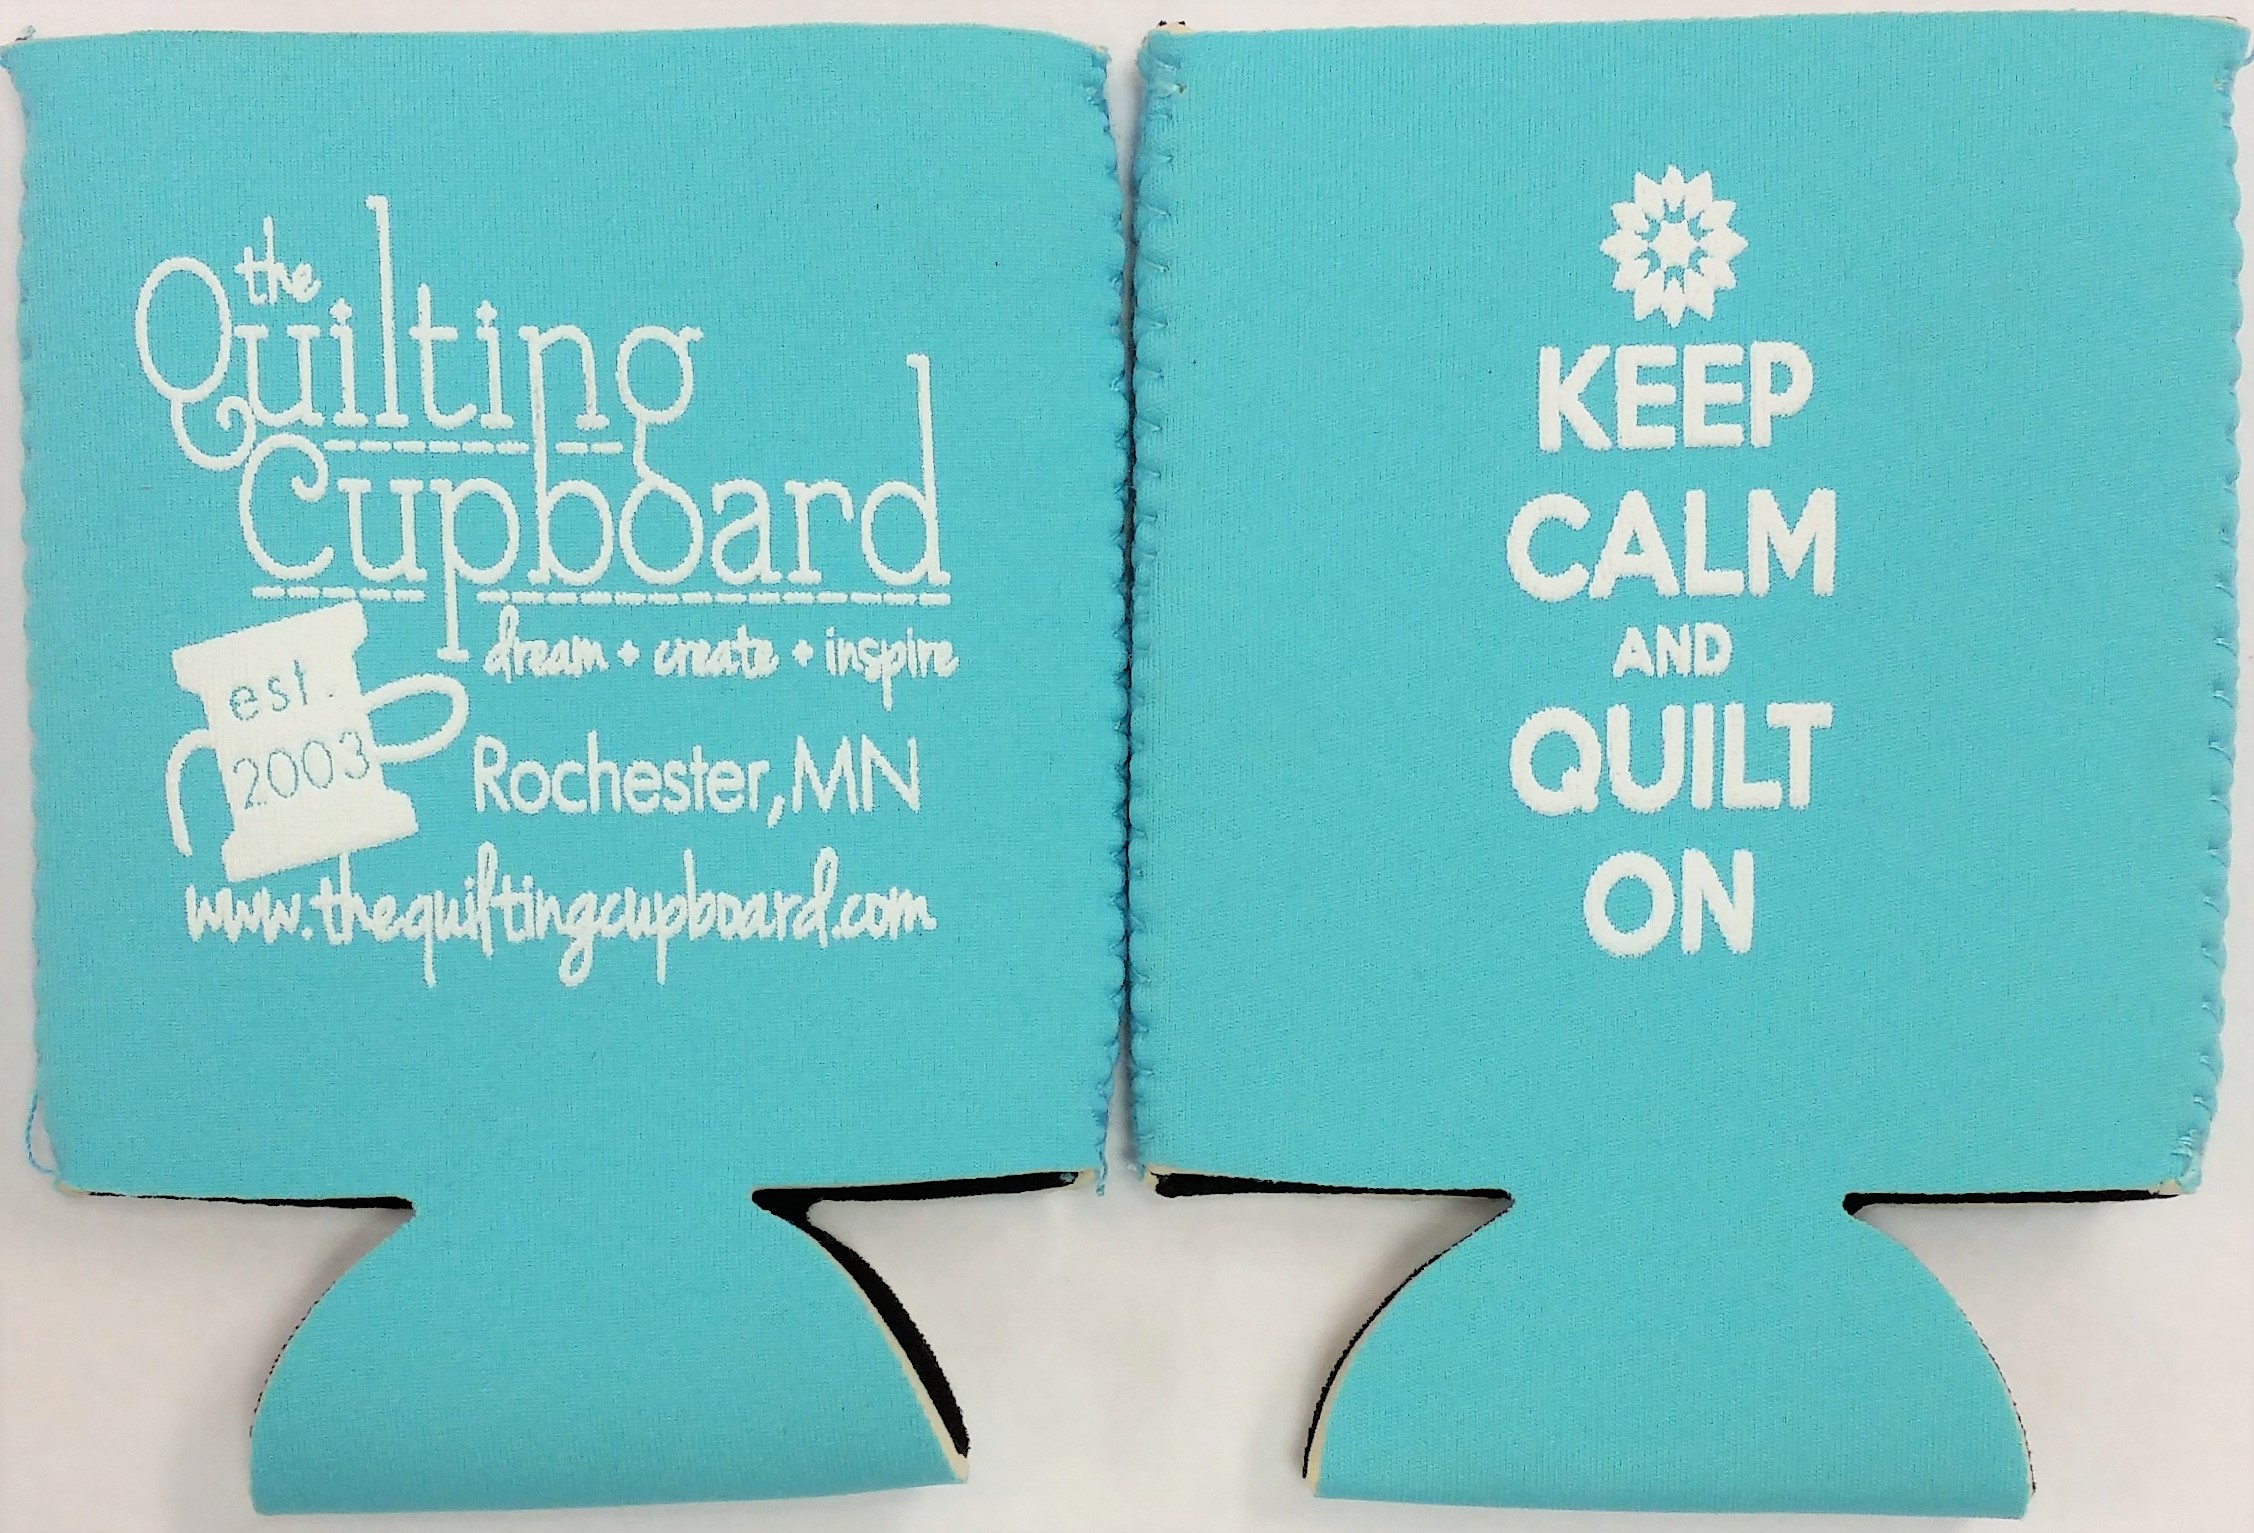 The Quilting Cupboard Drink Cooler